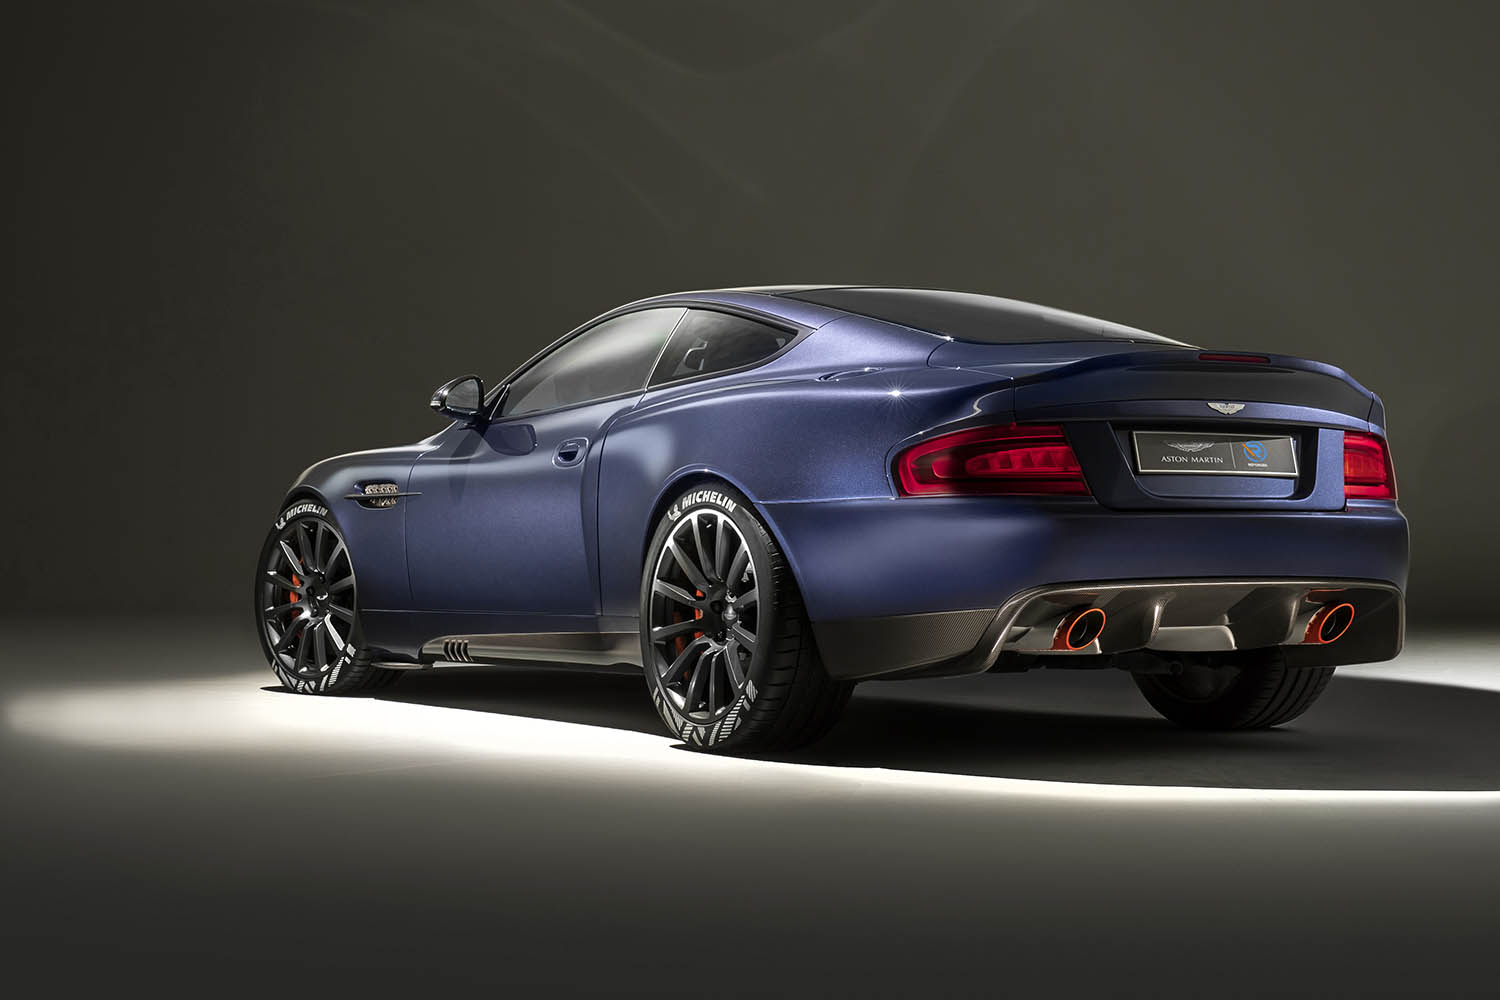 Aston Martin Vanquish 25 by CALLUM rear quarter.jpg